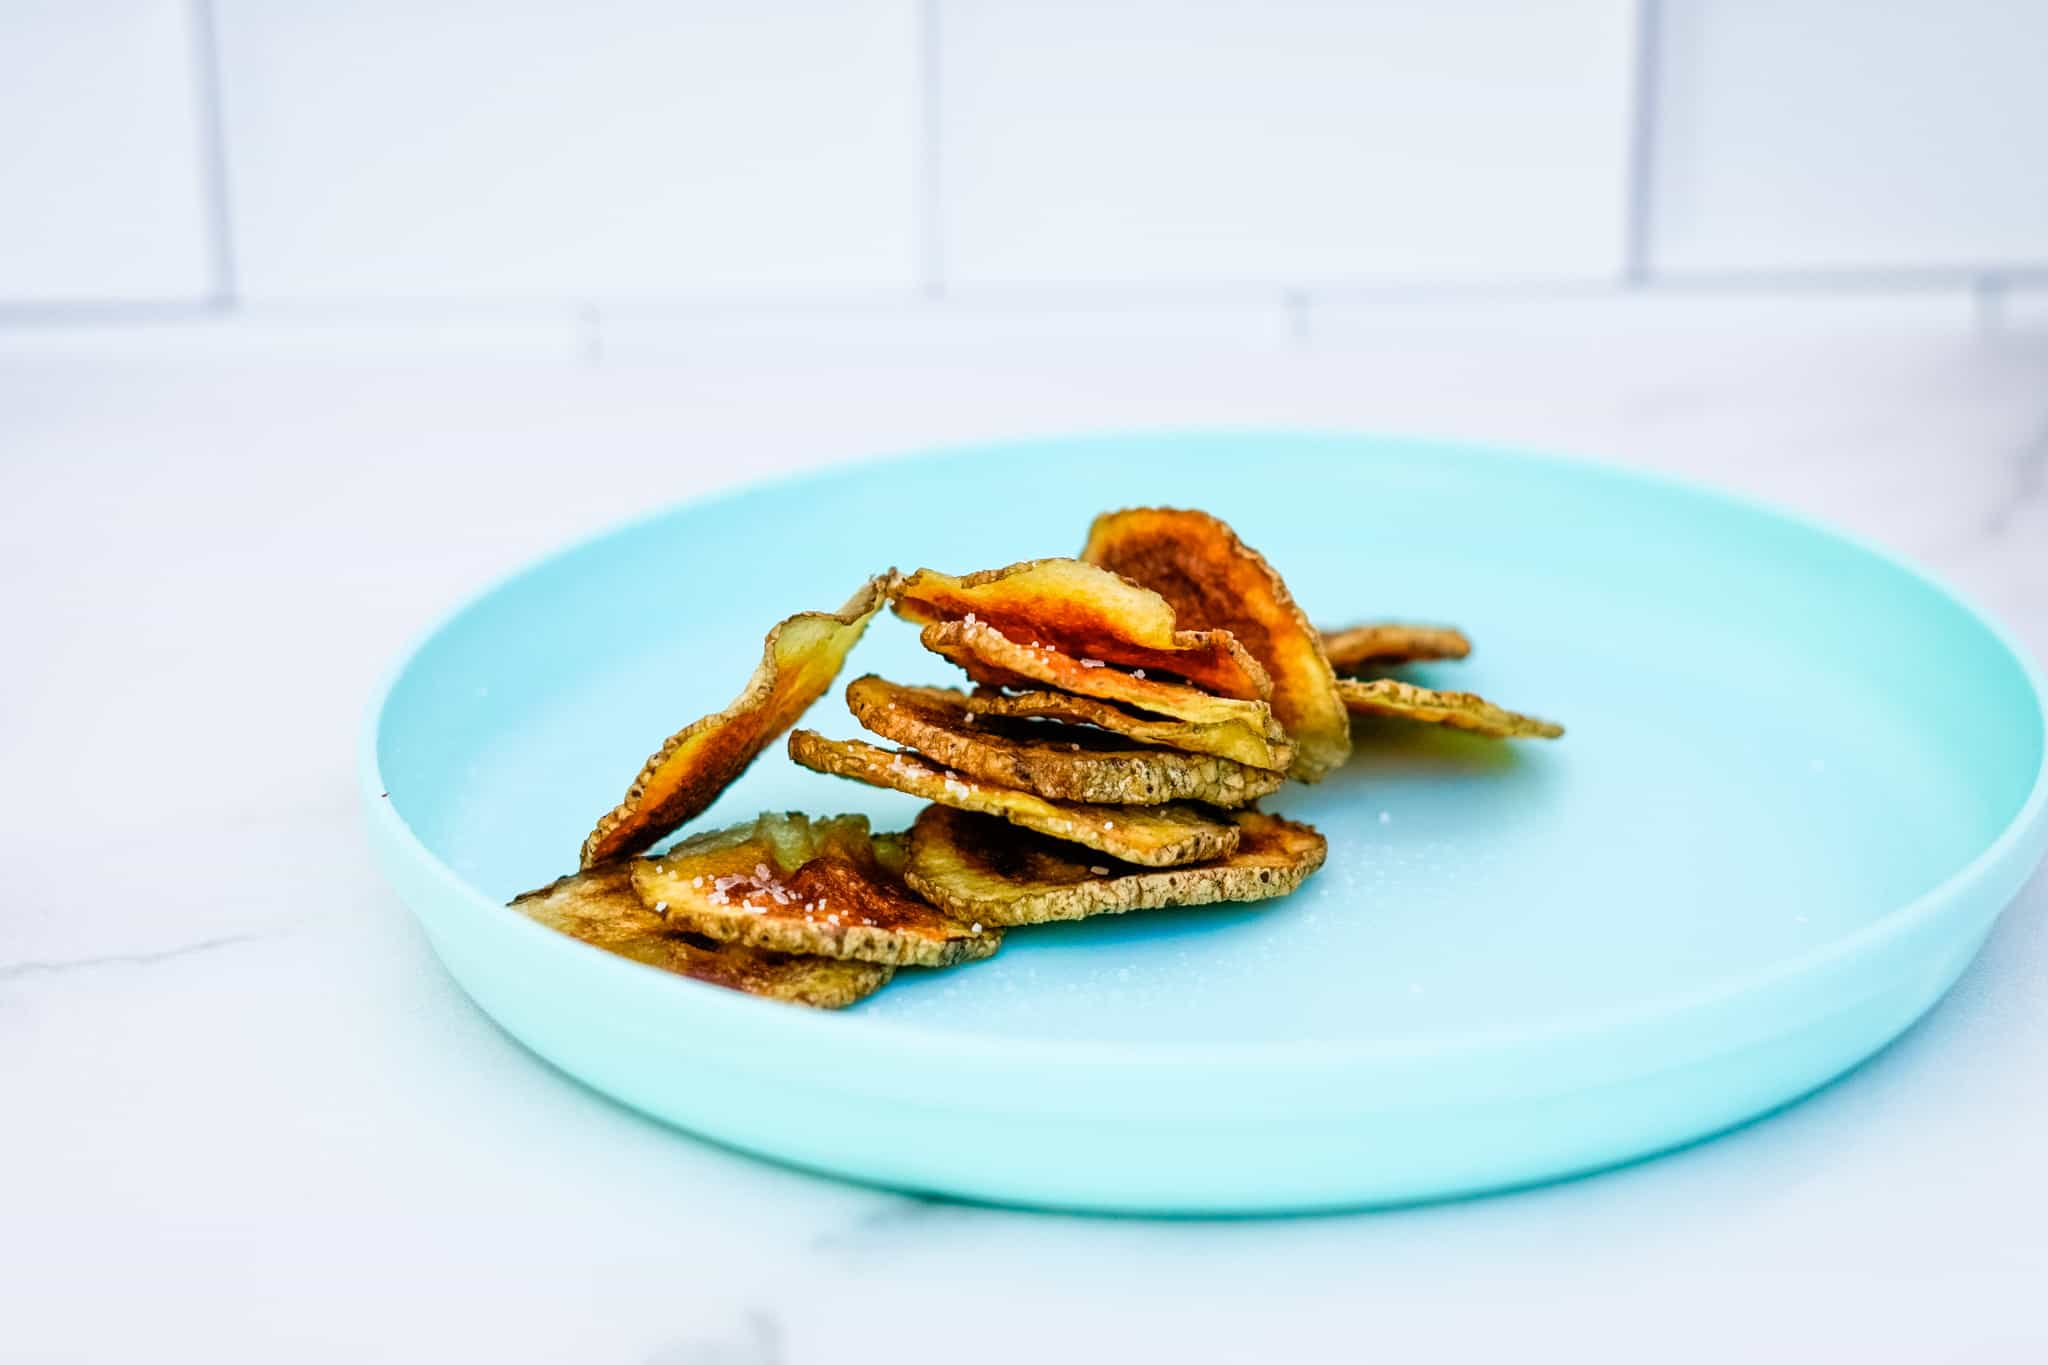 Crispy, crunchy cannabis potato chips on a turquoise plate. Made in the microwave.